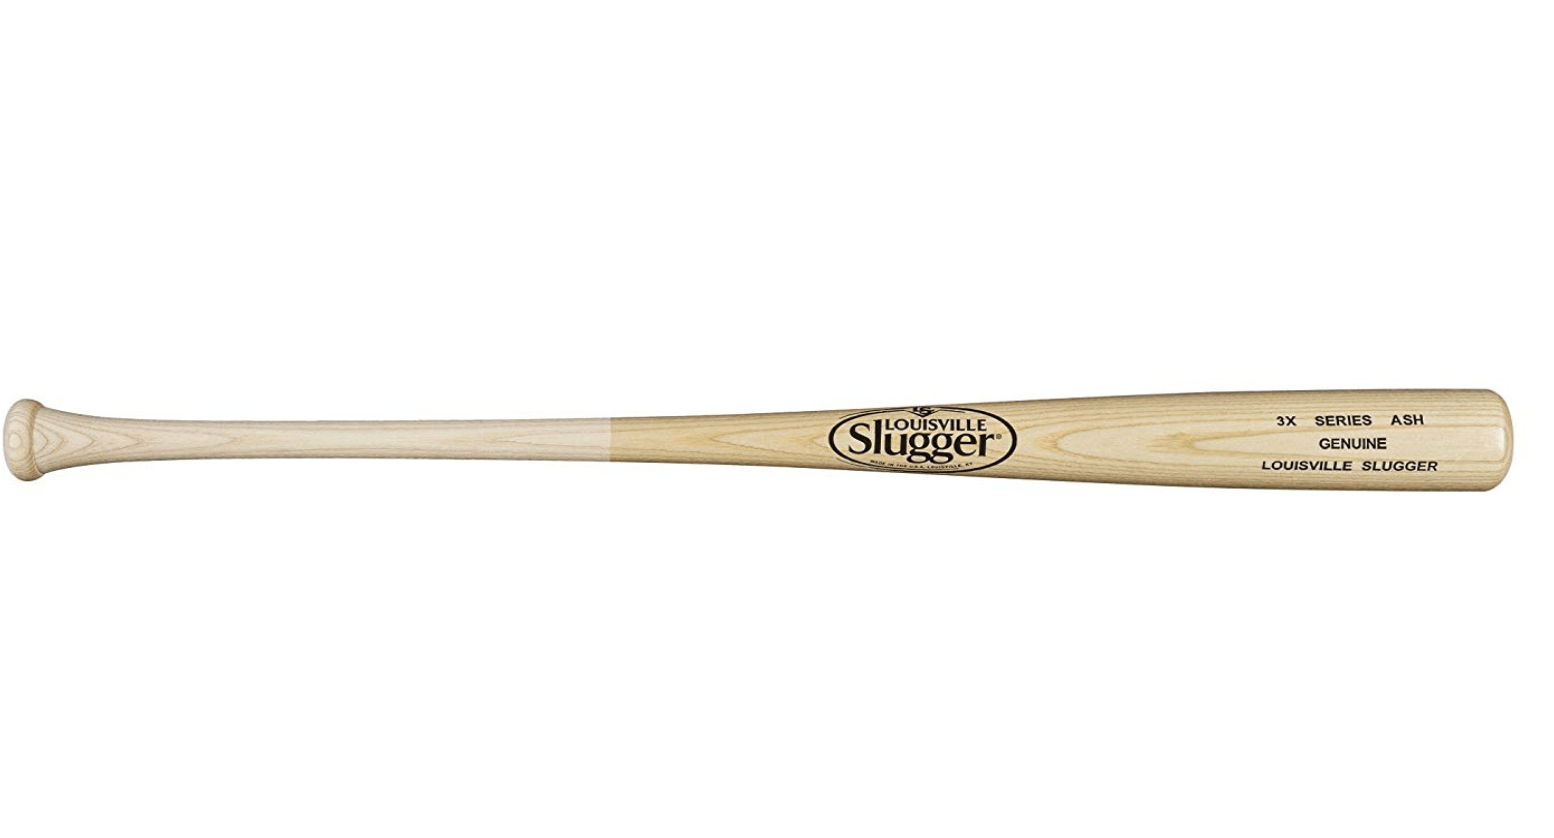 Top 10 Wood Bats of January 2019 - Top Picks & Buying Guide